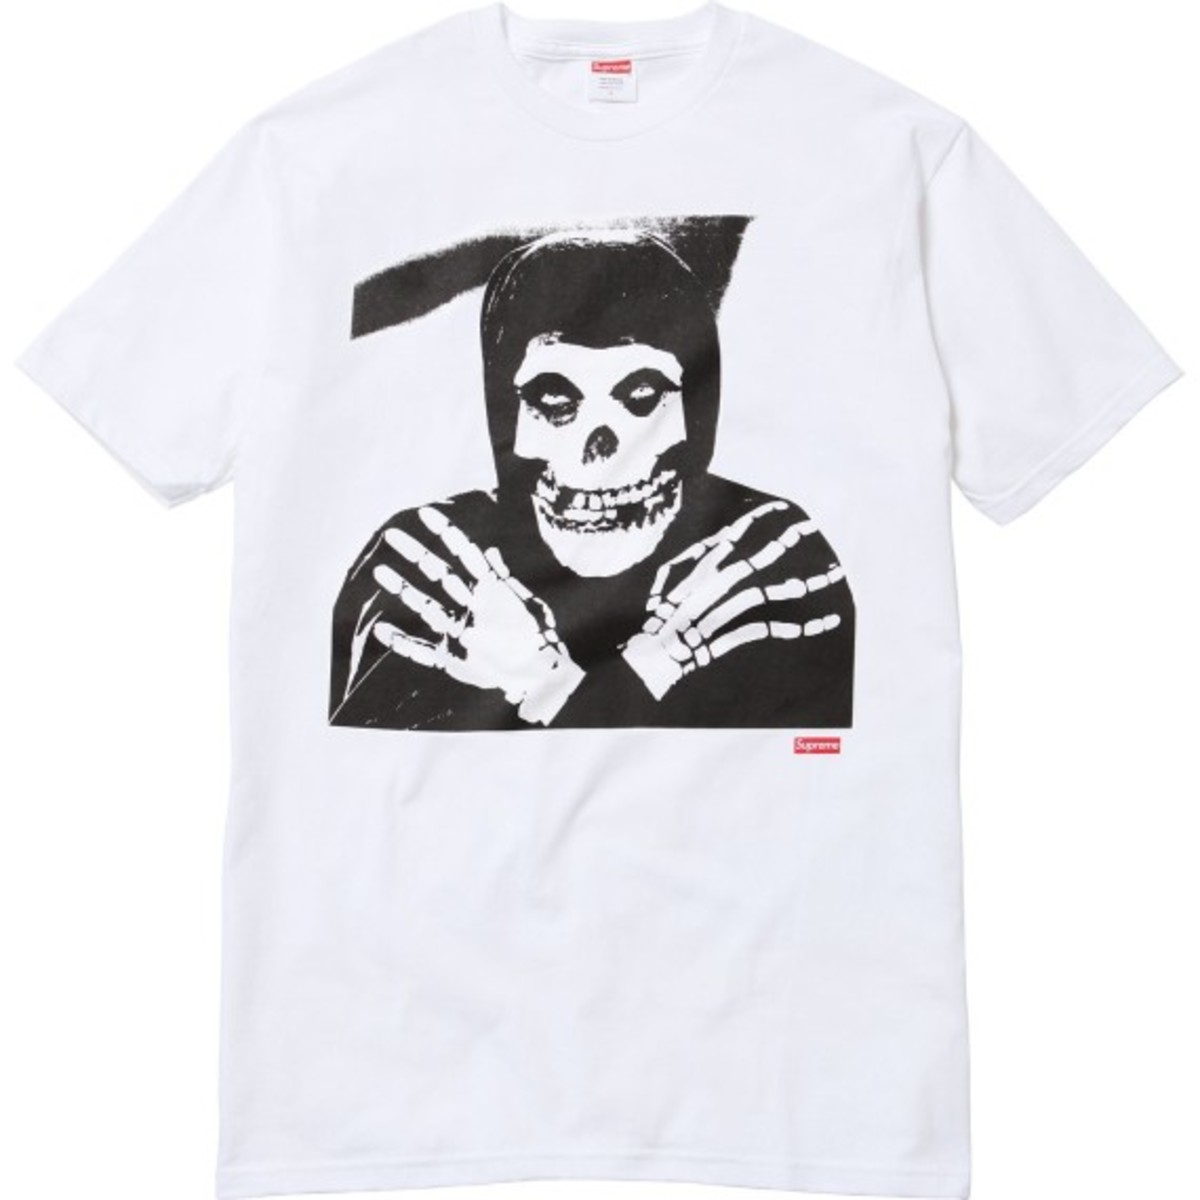 the-misfits-x-supreme-capsule-collection-available-20